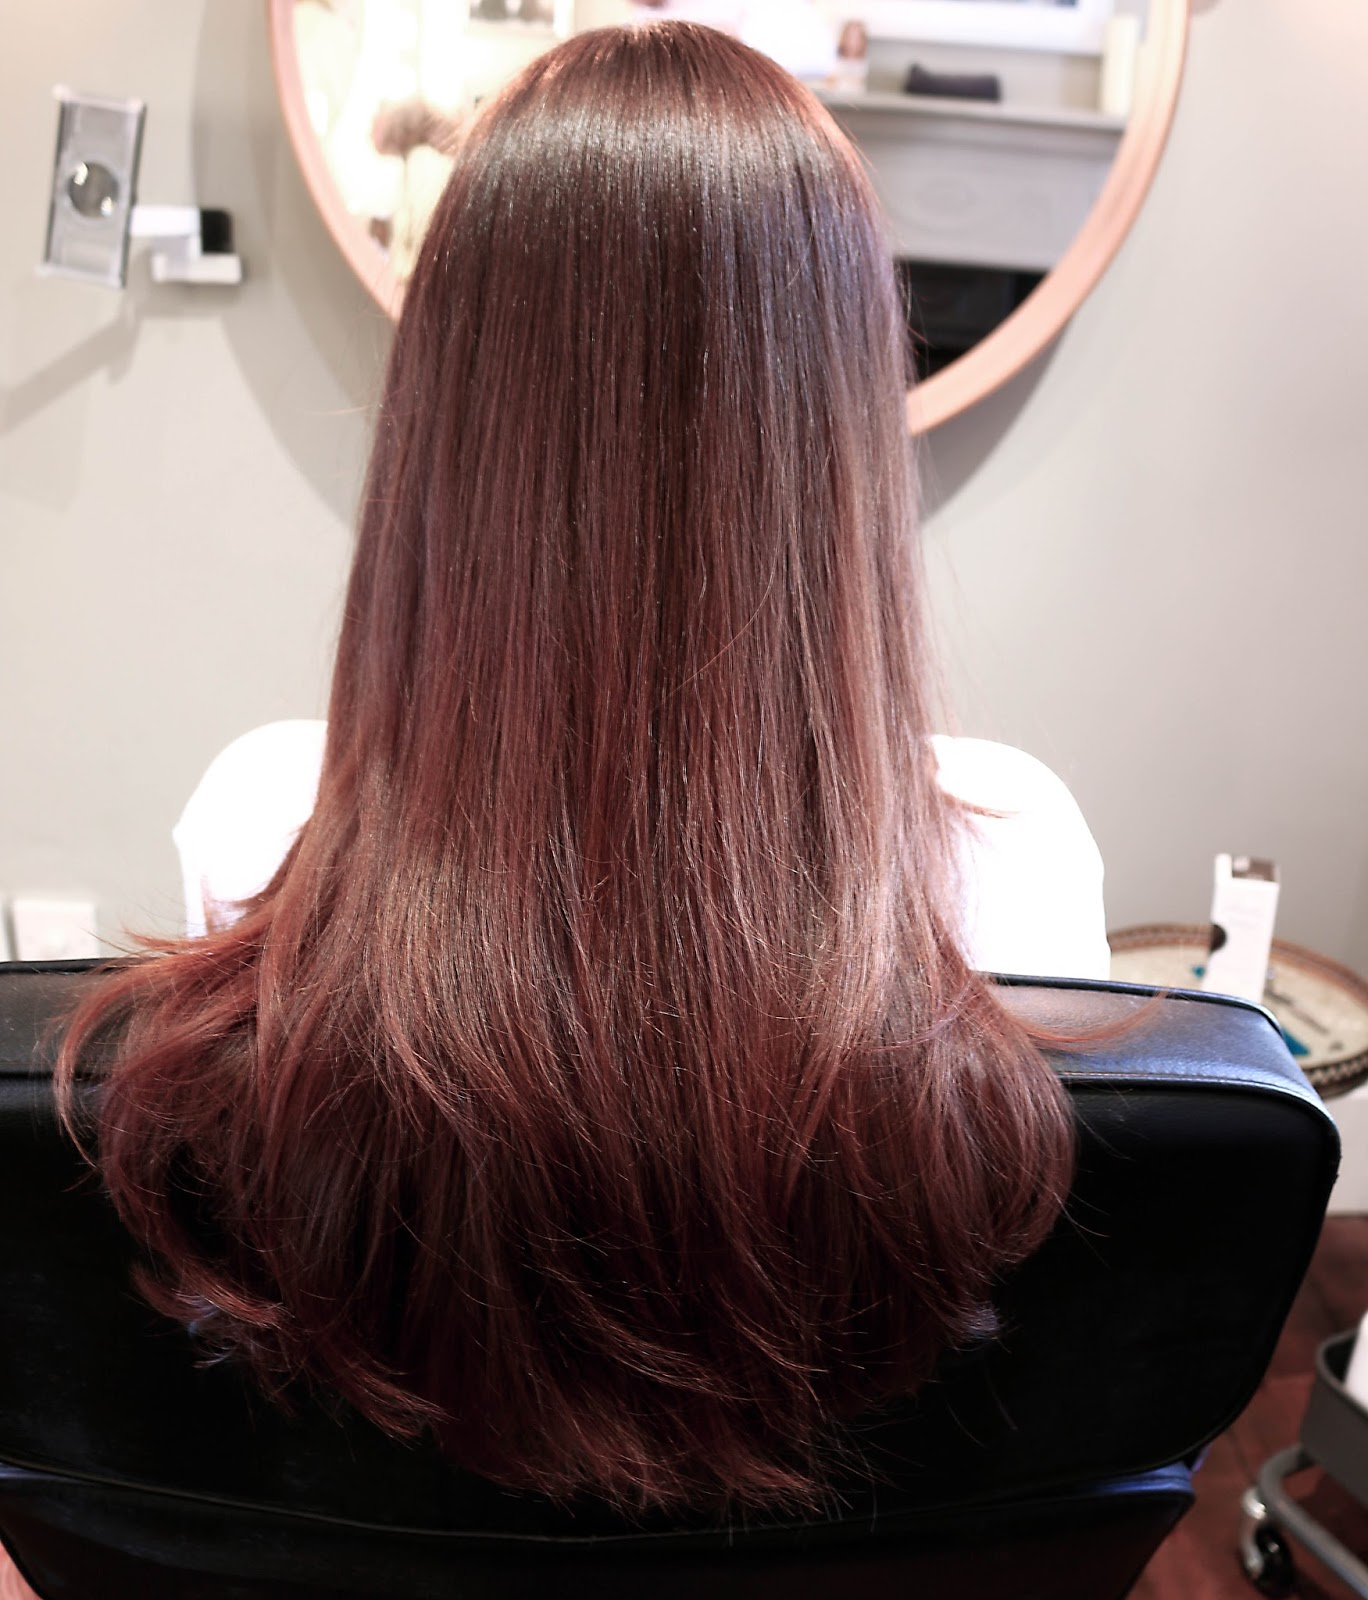 Hair chat what dye i use how to dye your hair at home hair chat what dye i use how to dye your hair at home urmus Image collections